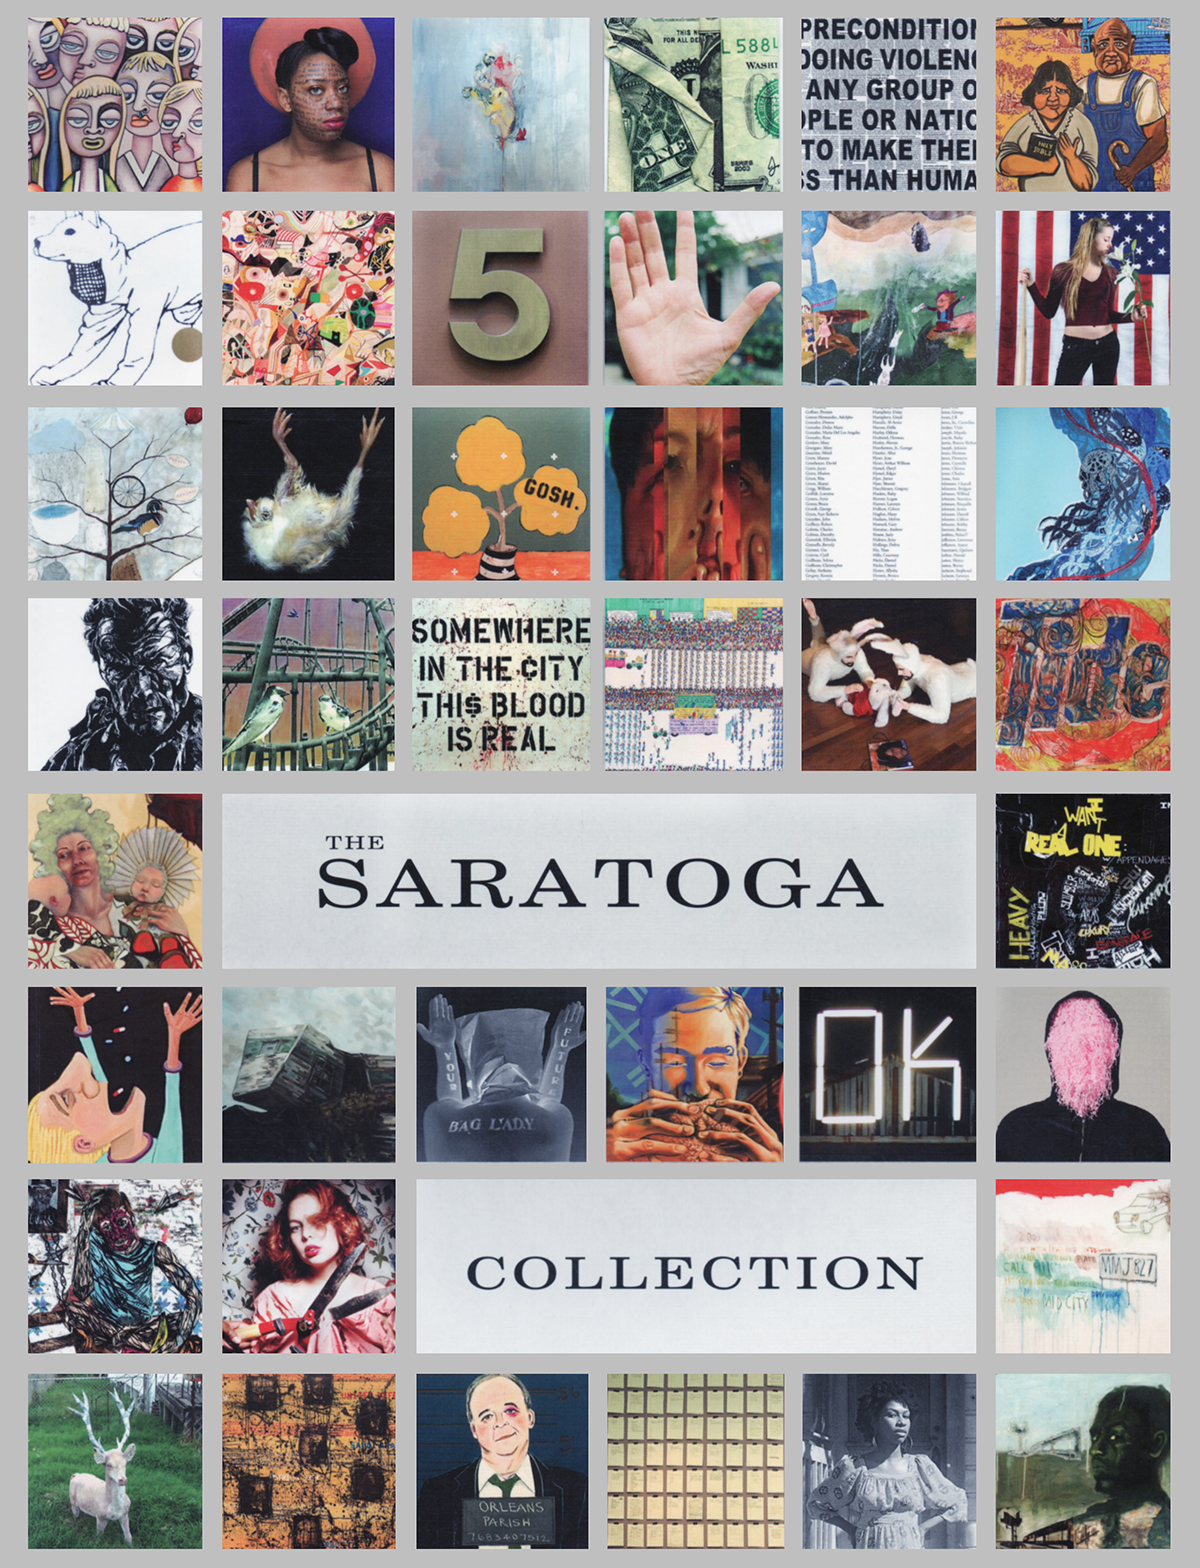 The Saratoga Collection catalog